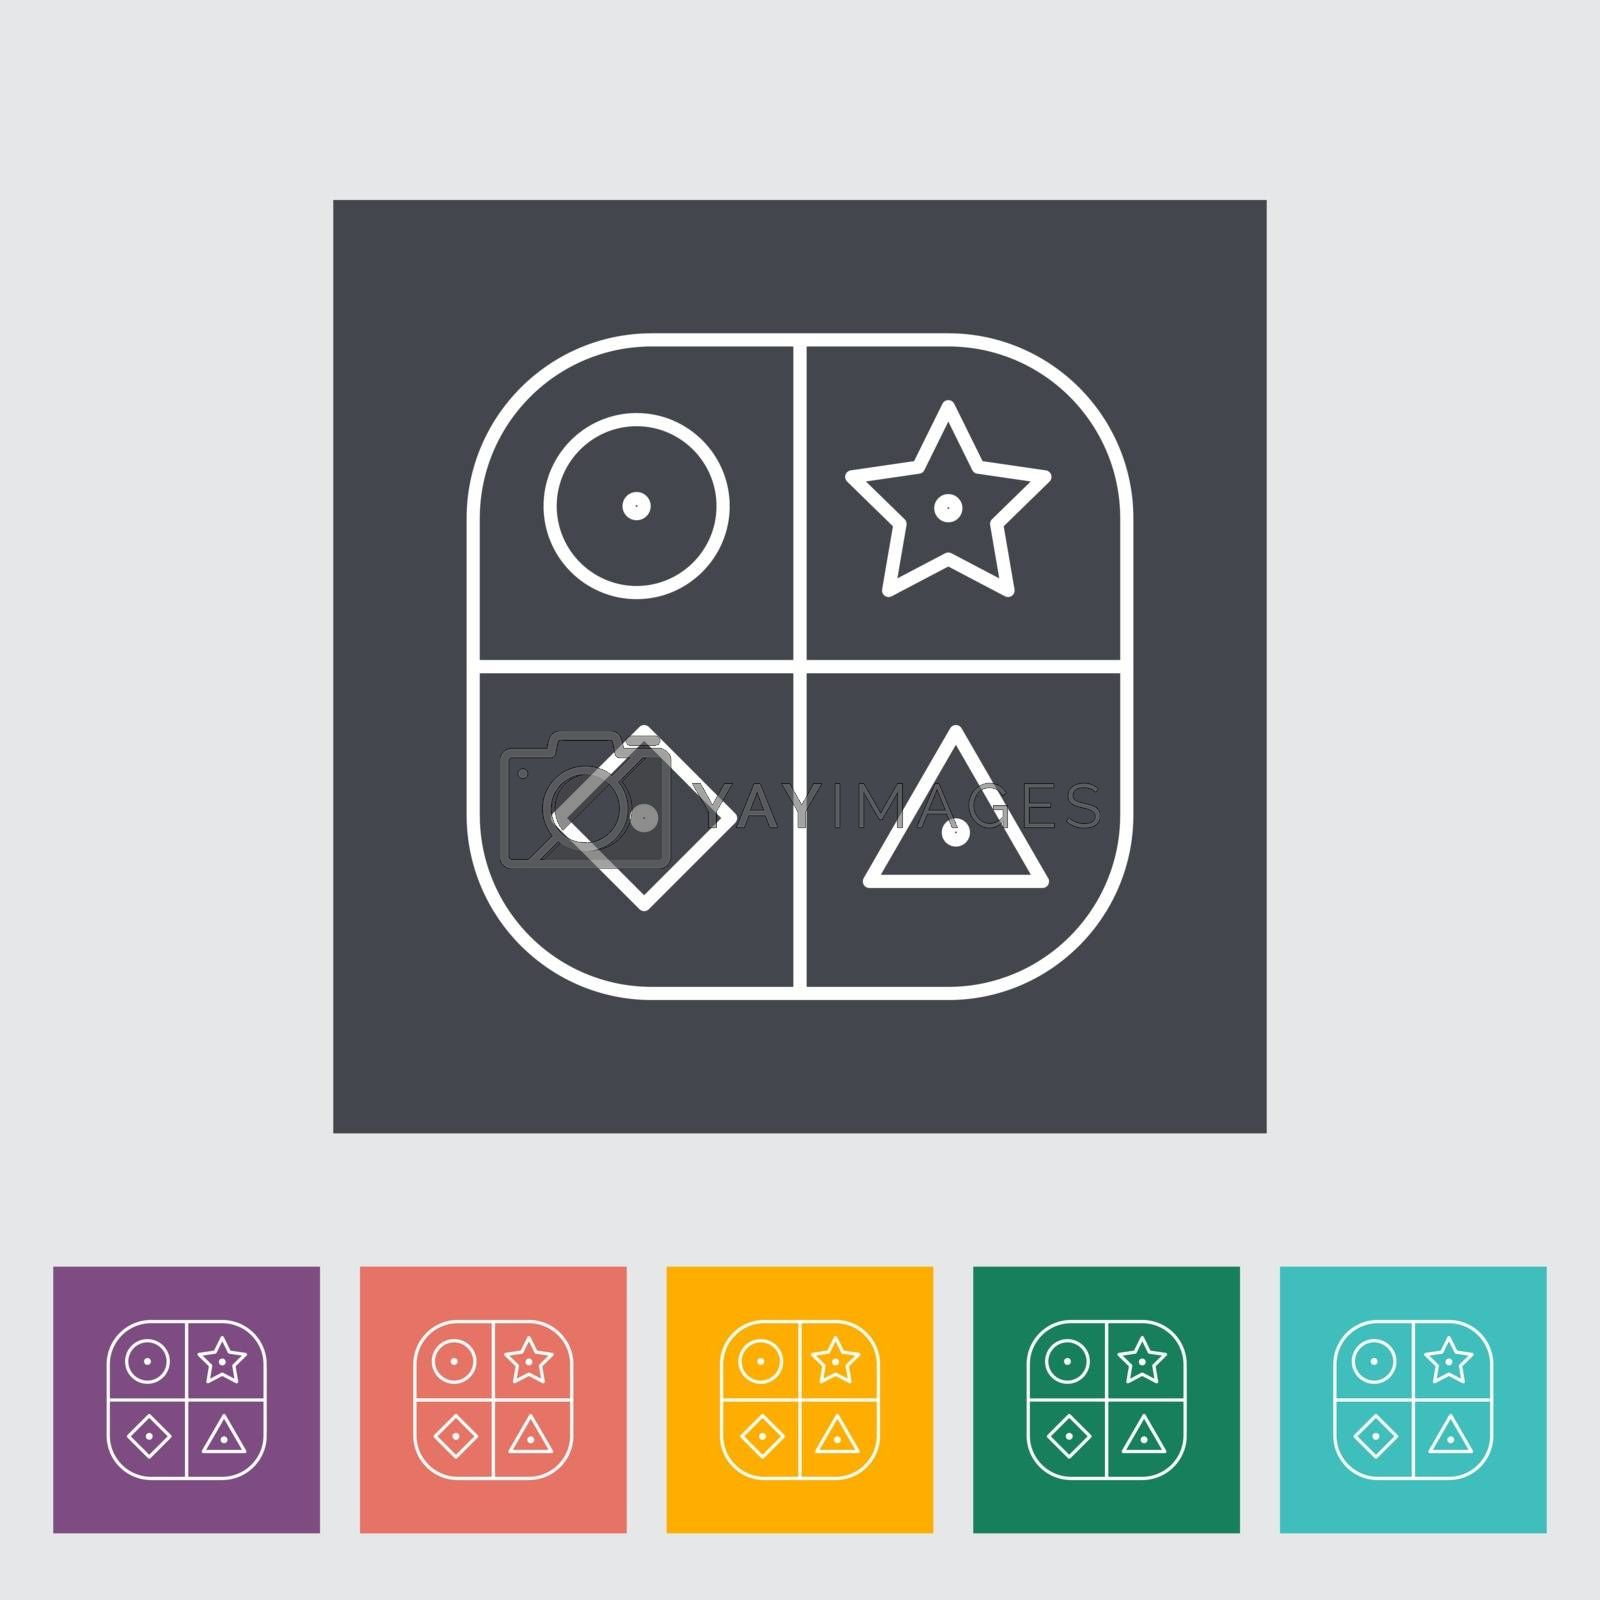 Sorter educational toy thin line flat vector related icon set for web and mobile applications. It can be used as - pictogram, icon, infographic element. Vector Illustration.